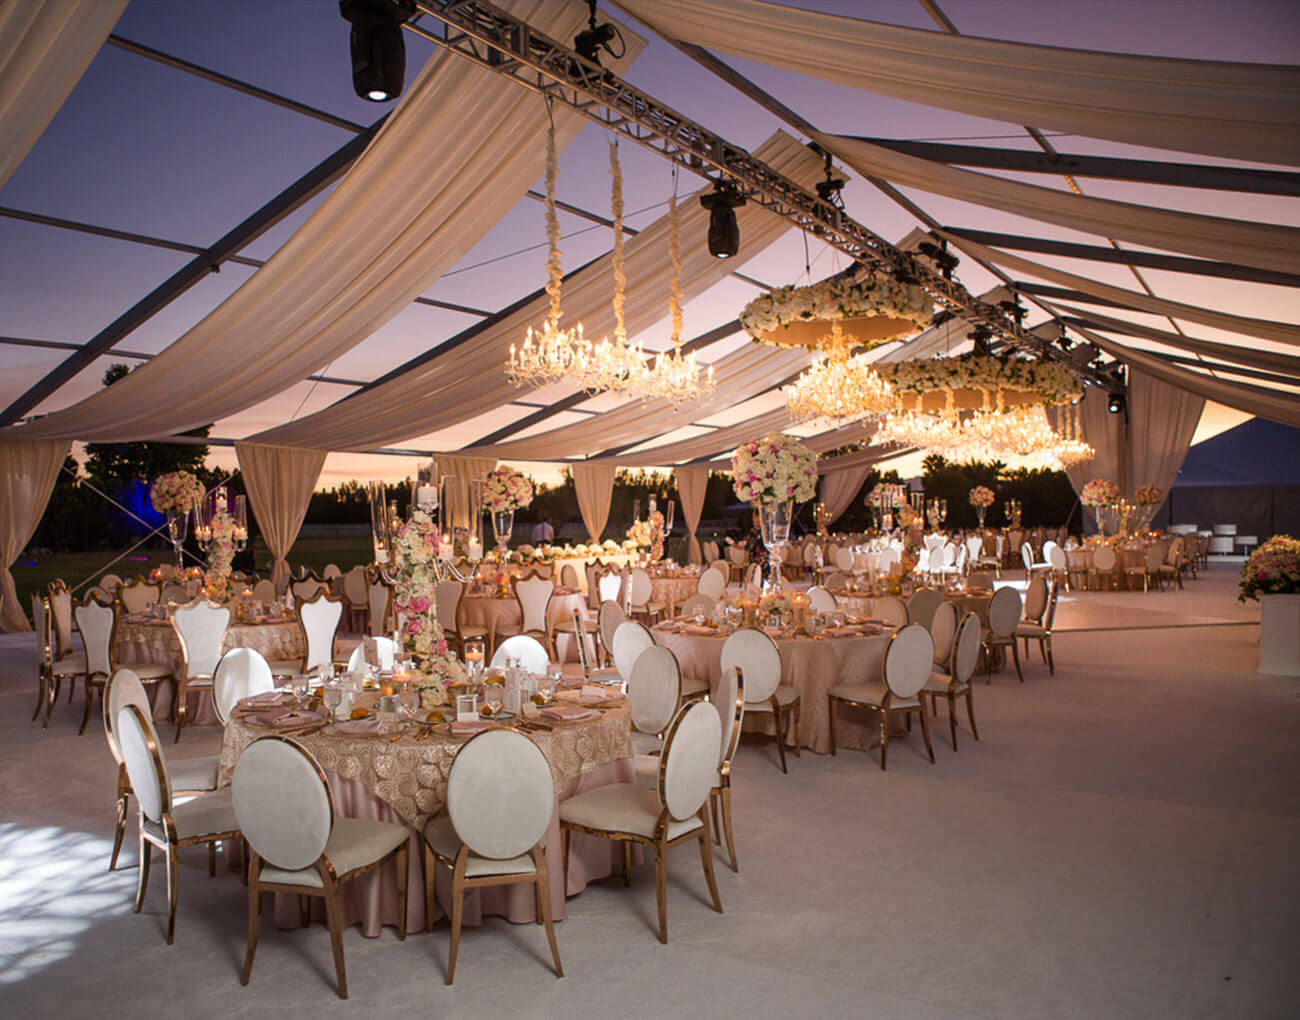 Inside a wedding marquee at dusk